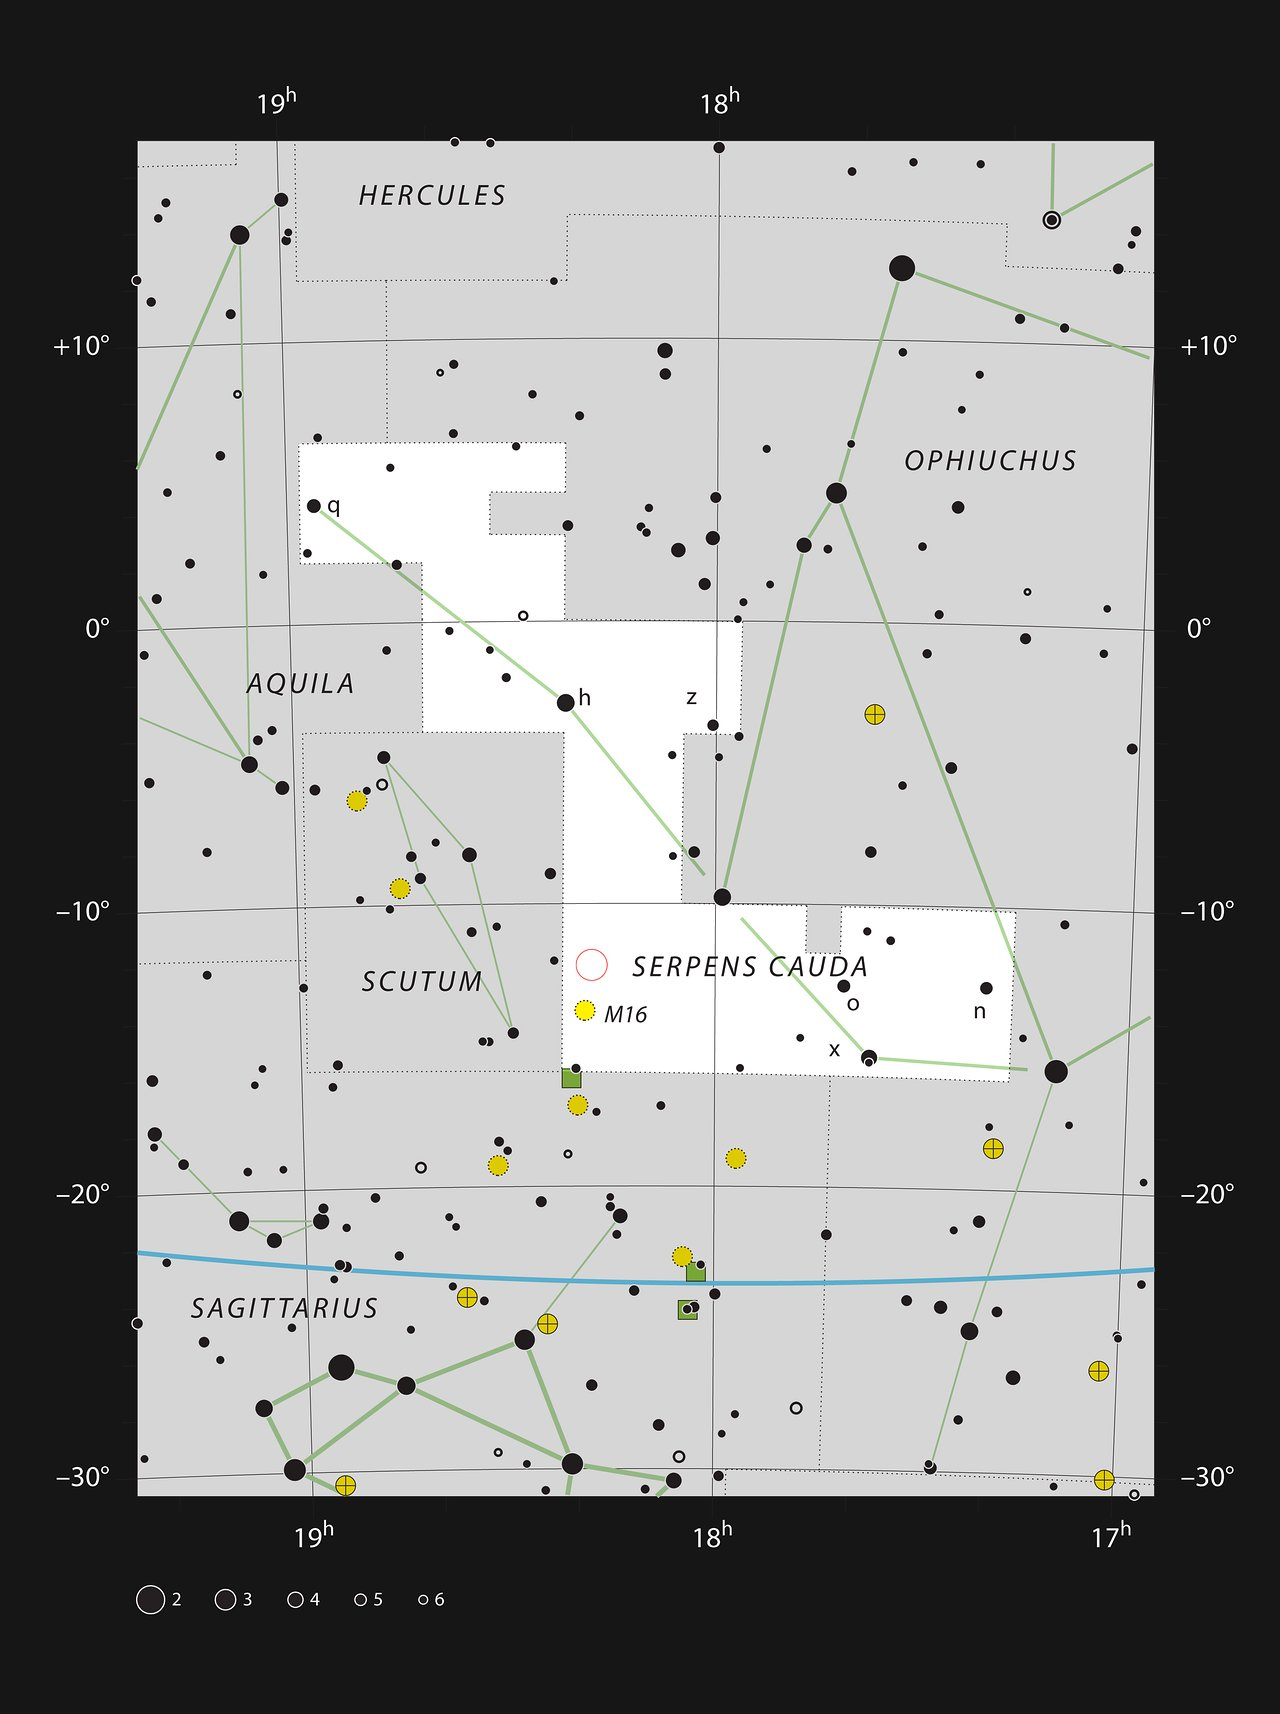 The star cluster NGC 6604 in the constellation of Serpens